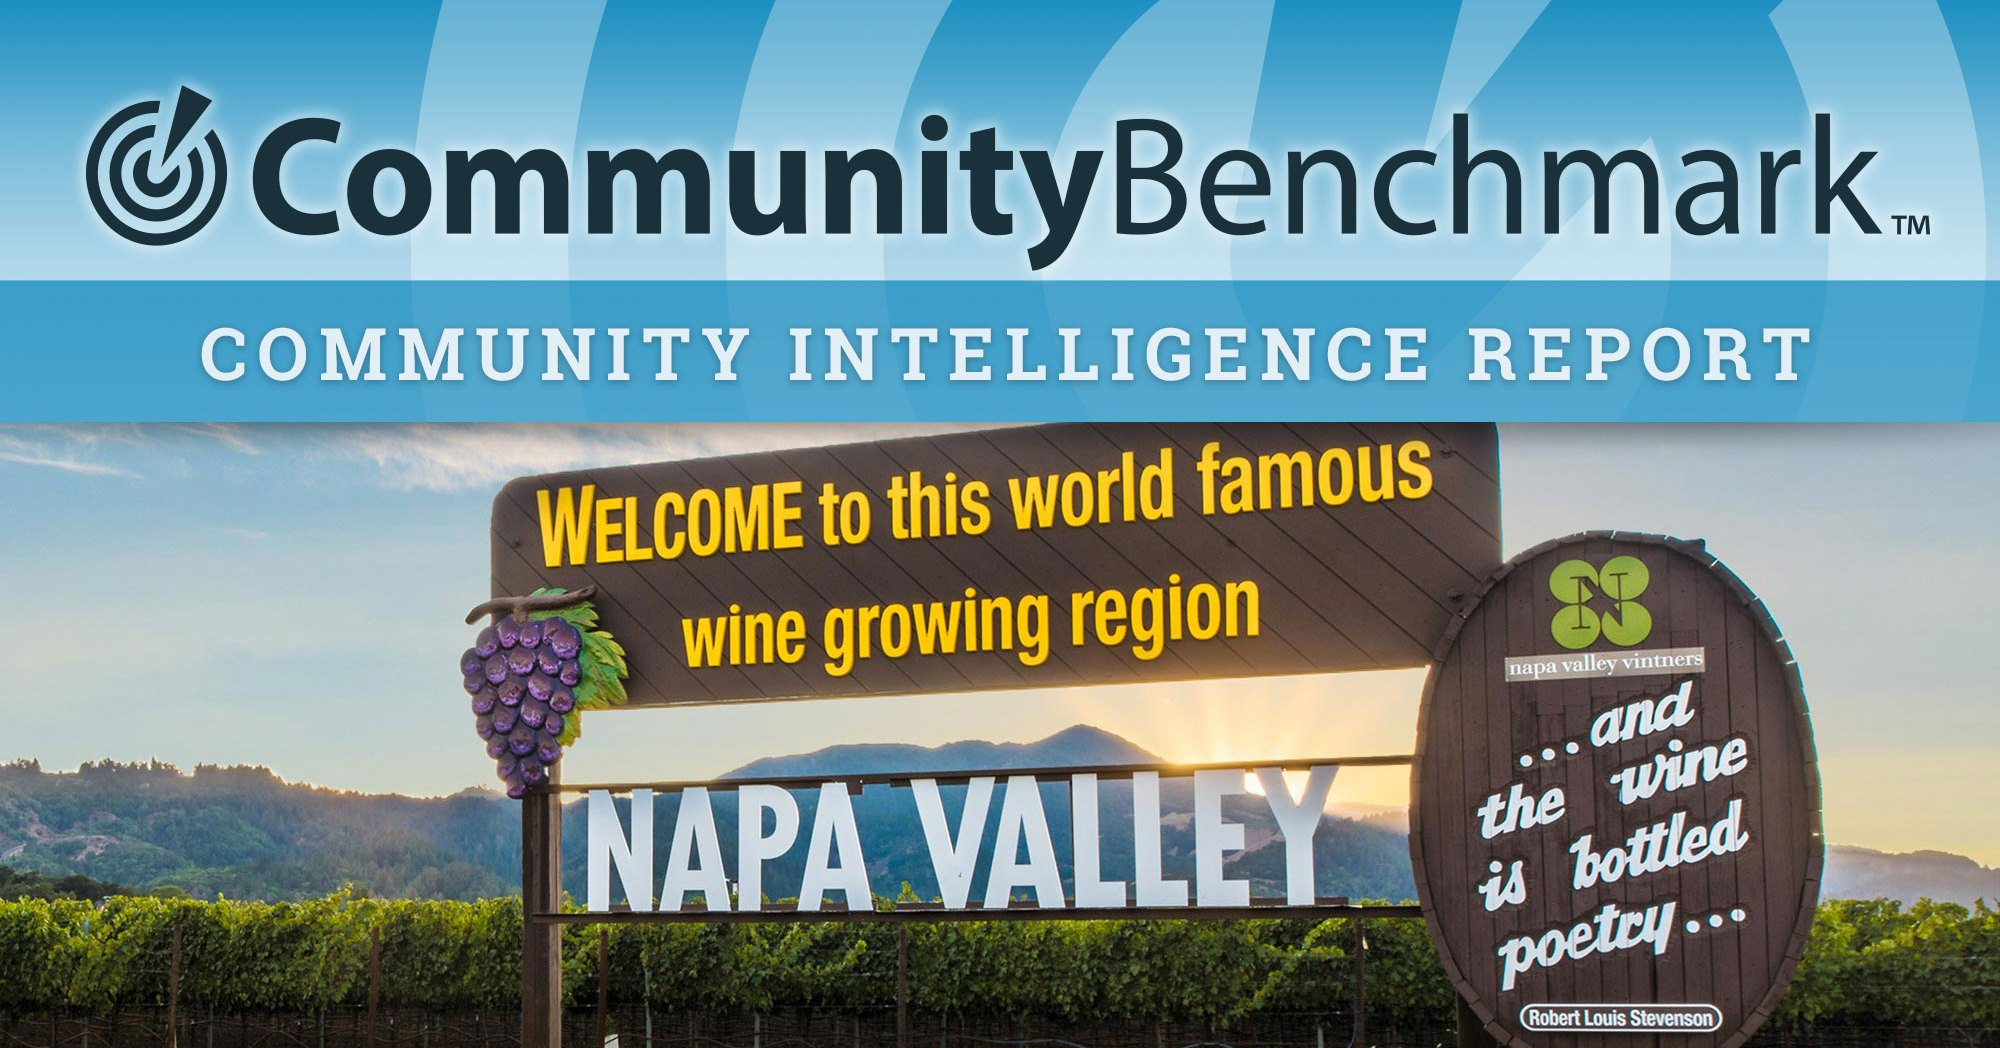 Community Intelligence Report for Napa Valley